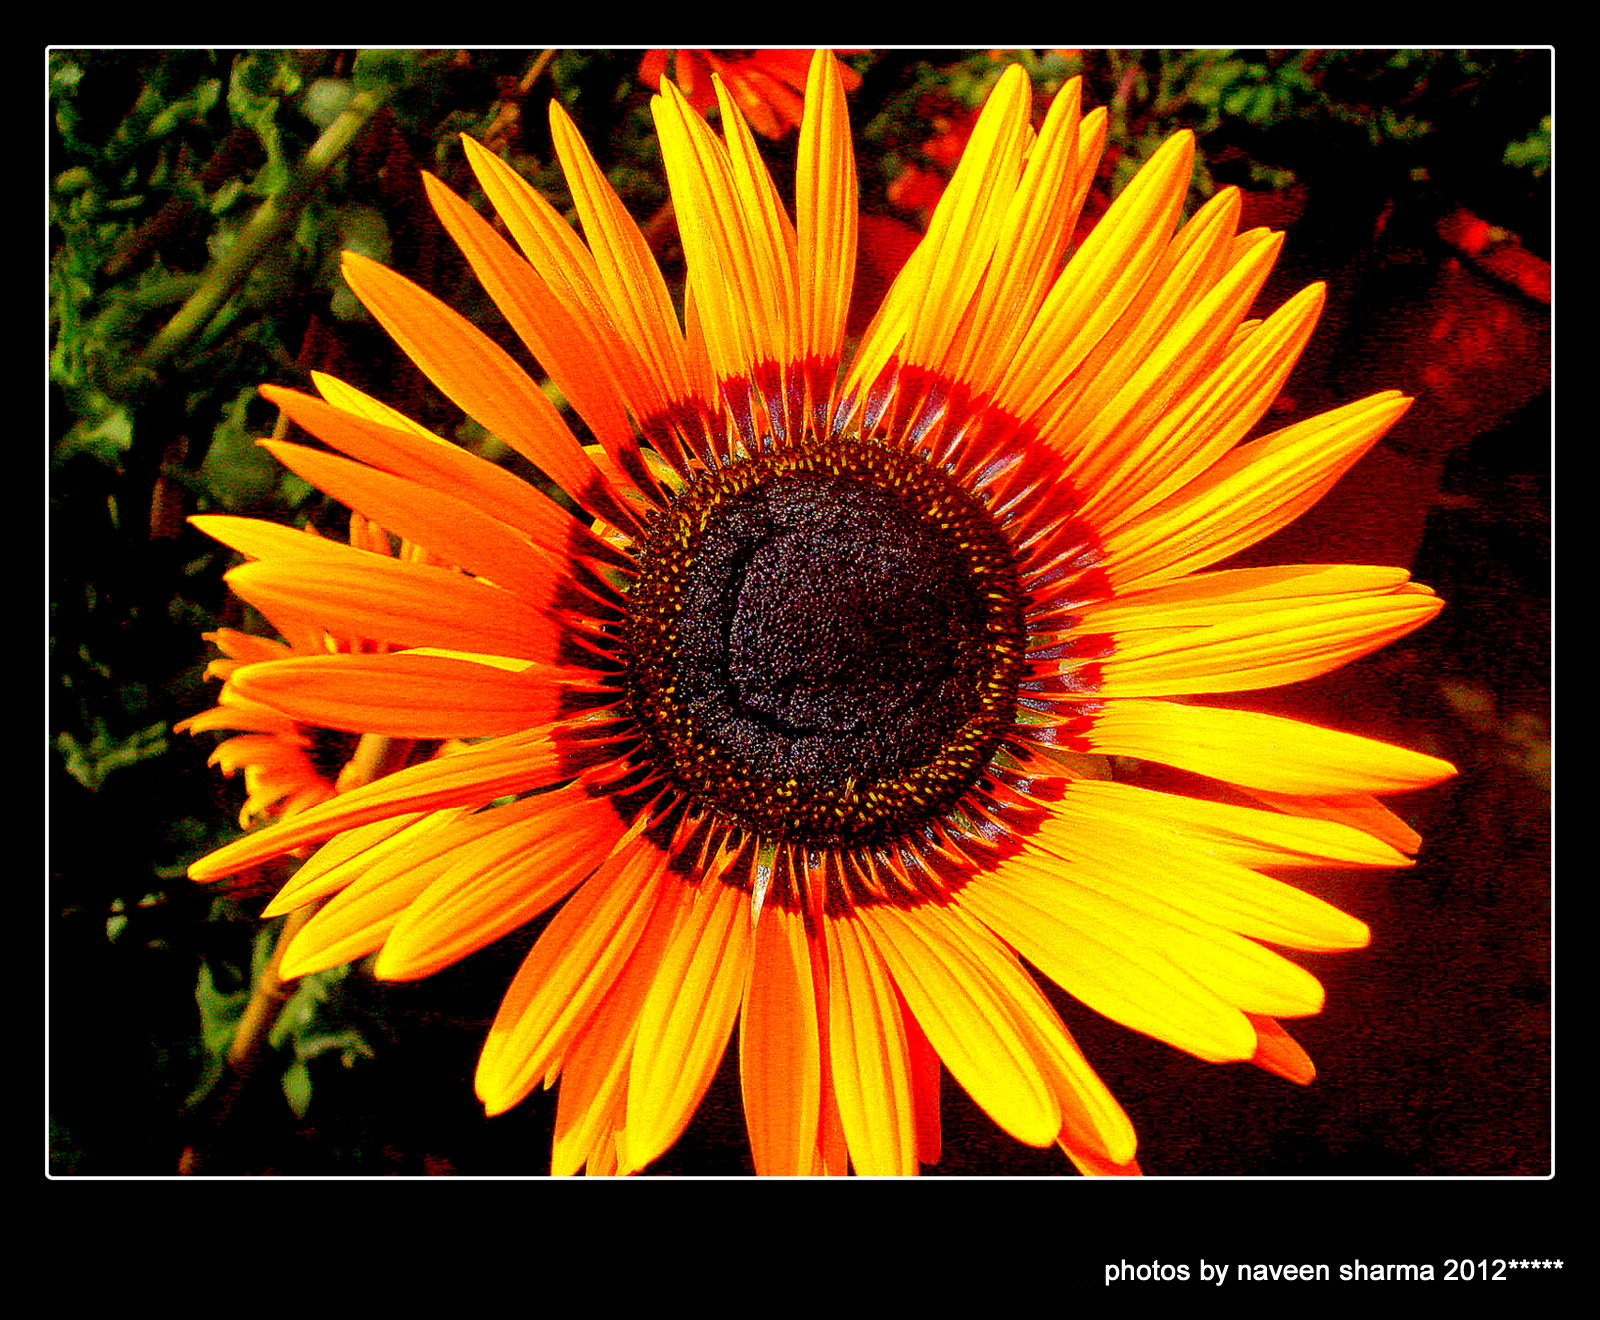 Photograph FLORAL BEAUTY by naveen sharma on 500px